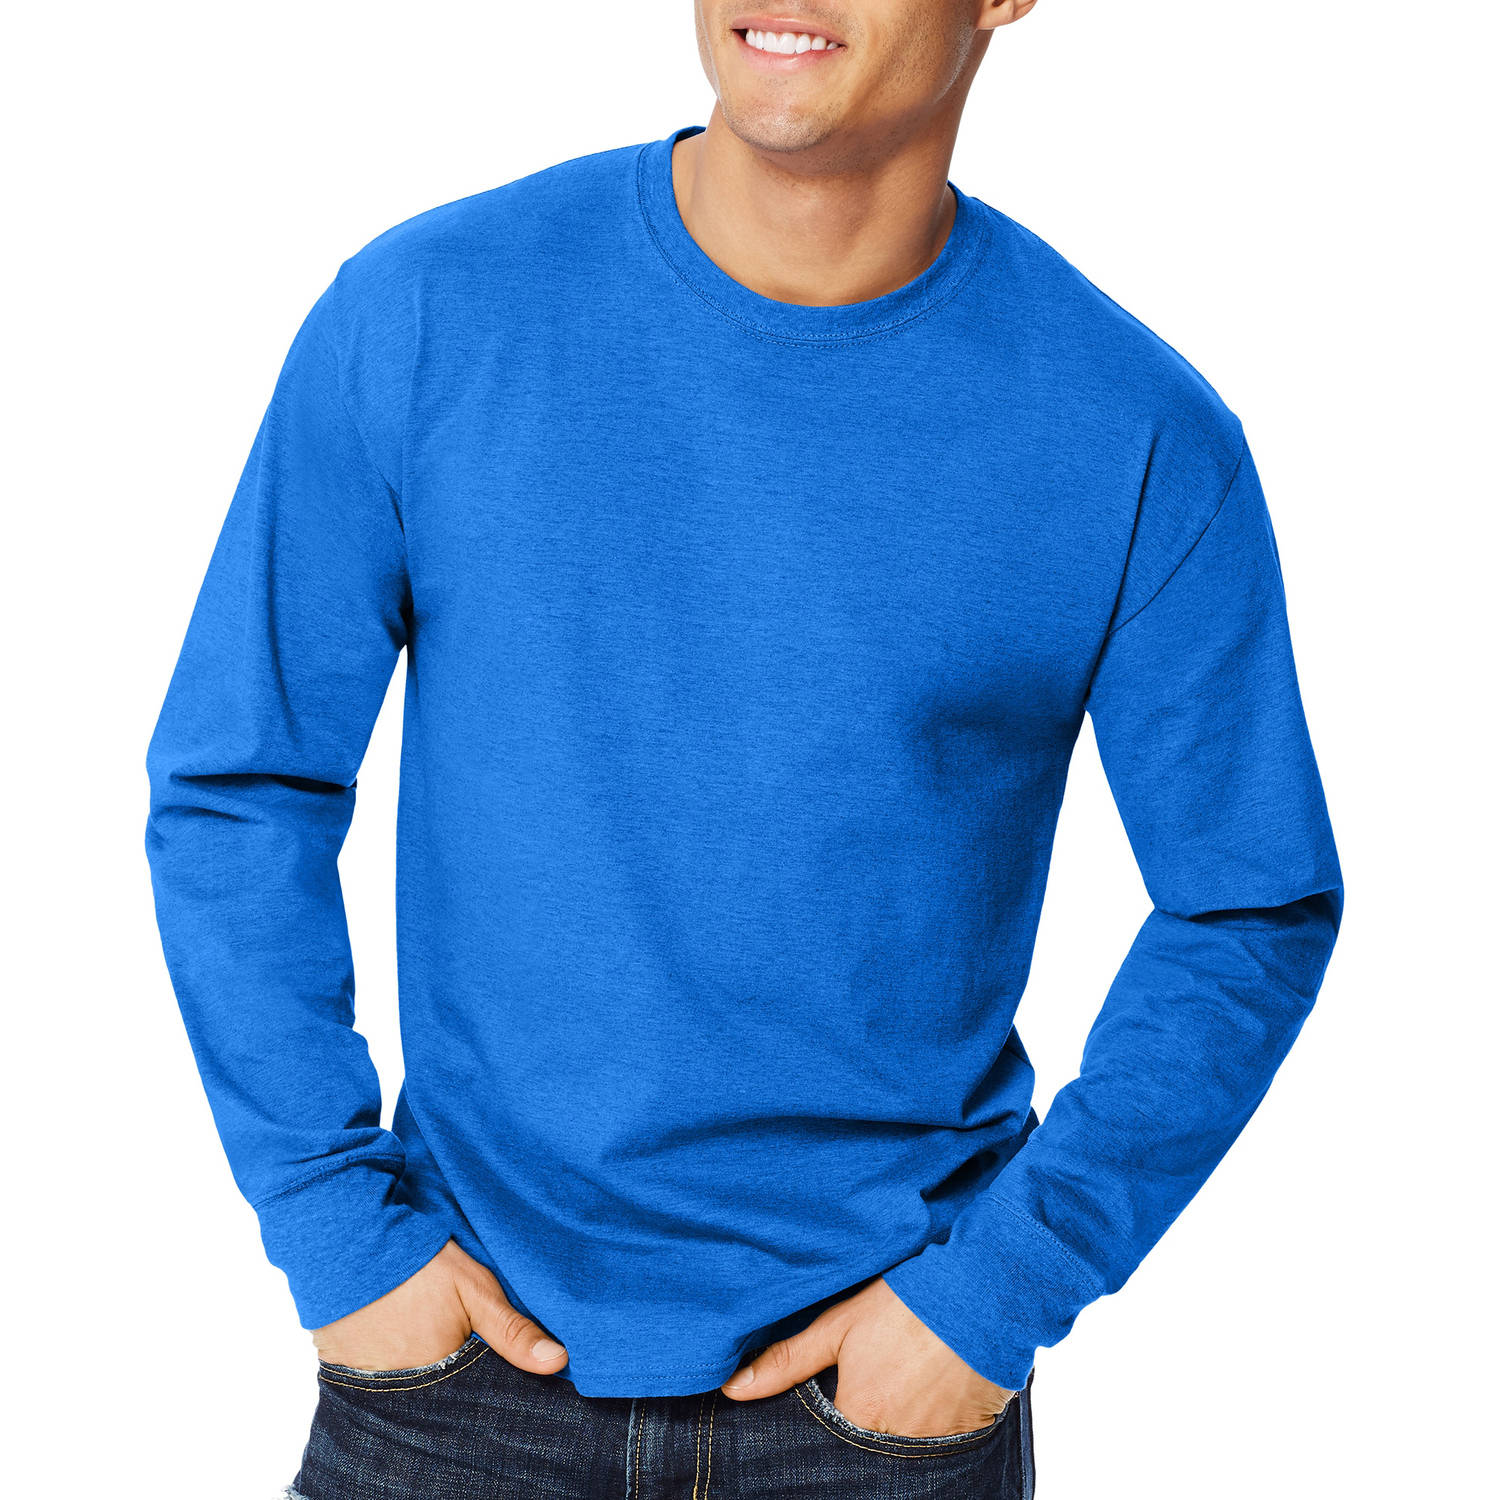 Hanes Big Men's X-temp Long Sleeve T-shirt